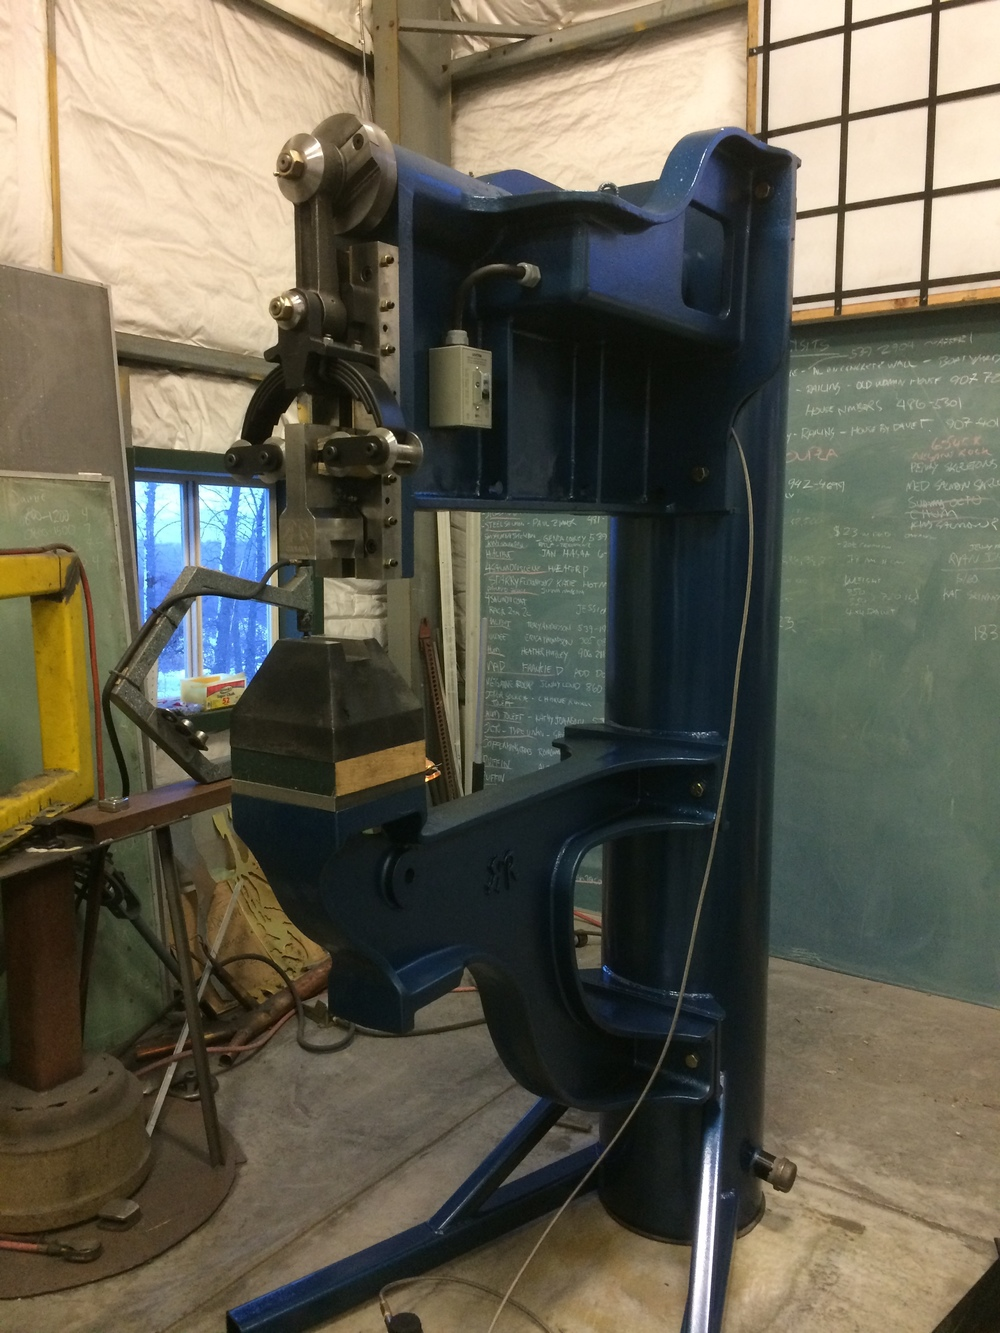 This is a sheetmetal power hammer. This hammer was built in 2015 by Renato Muskovic of British Columbia. It has cast iron arms and is powered by a 2 HP electric motor and a hydraulic cone clutch. Its name is Ramona.